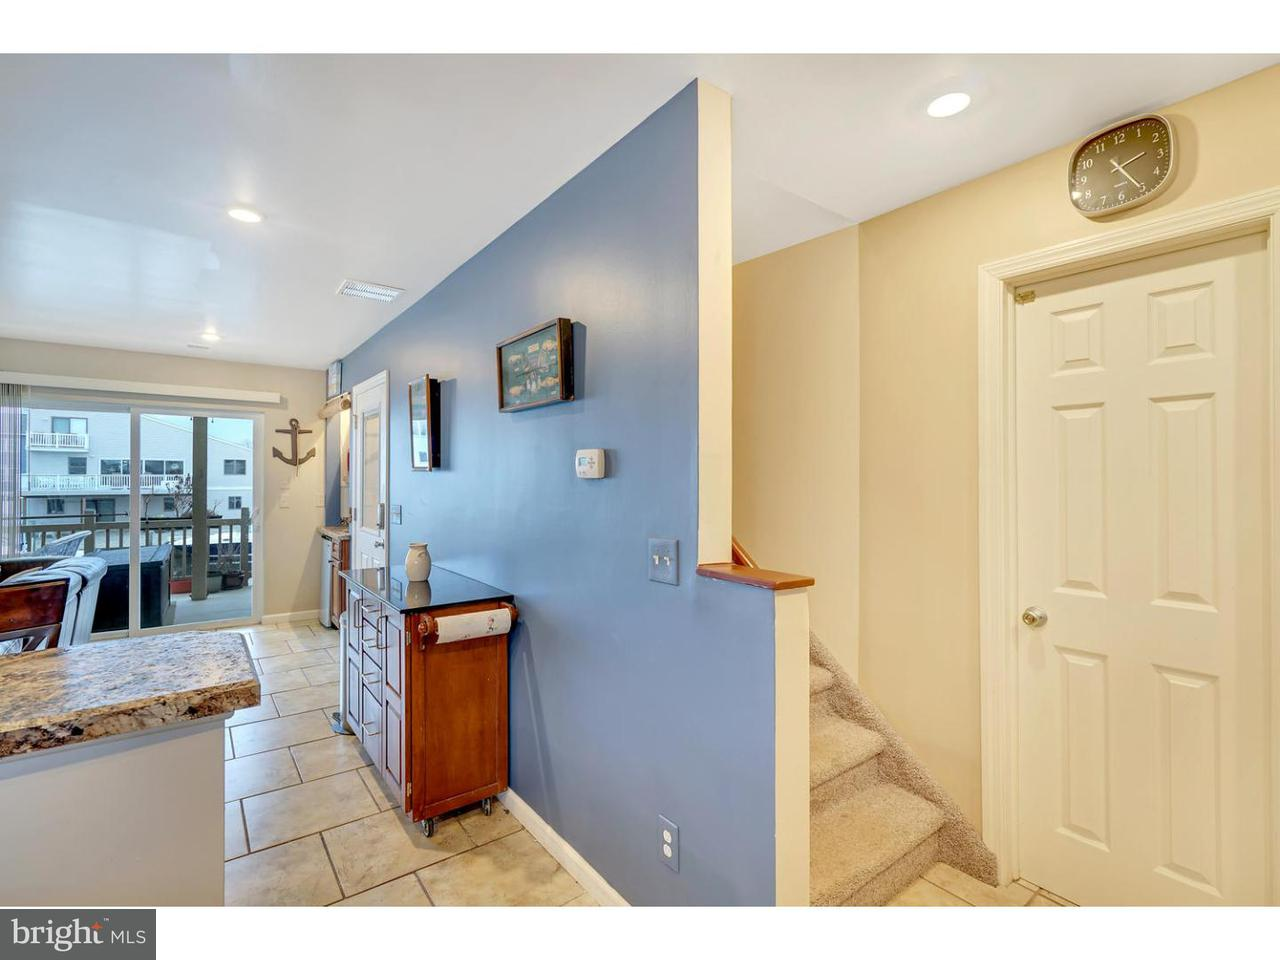 Single Family Home for Sale at 1107 OAHU Drive Lacey Township, New Jersey 08731 United States